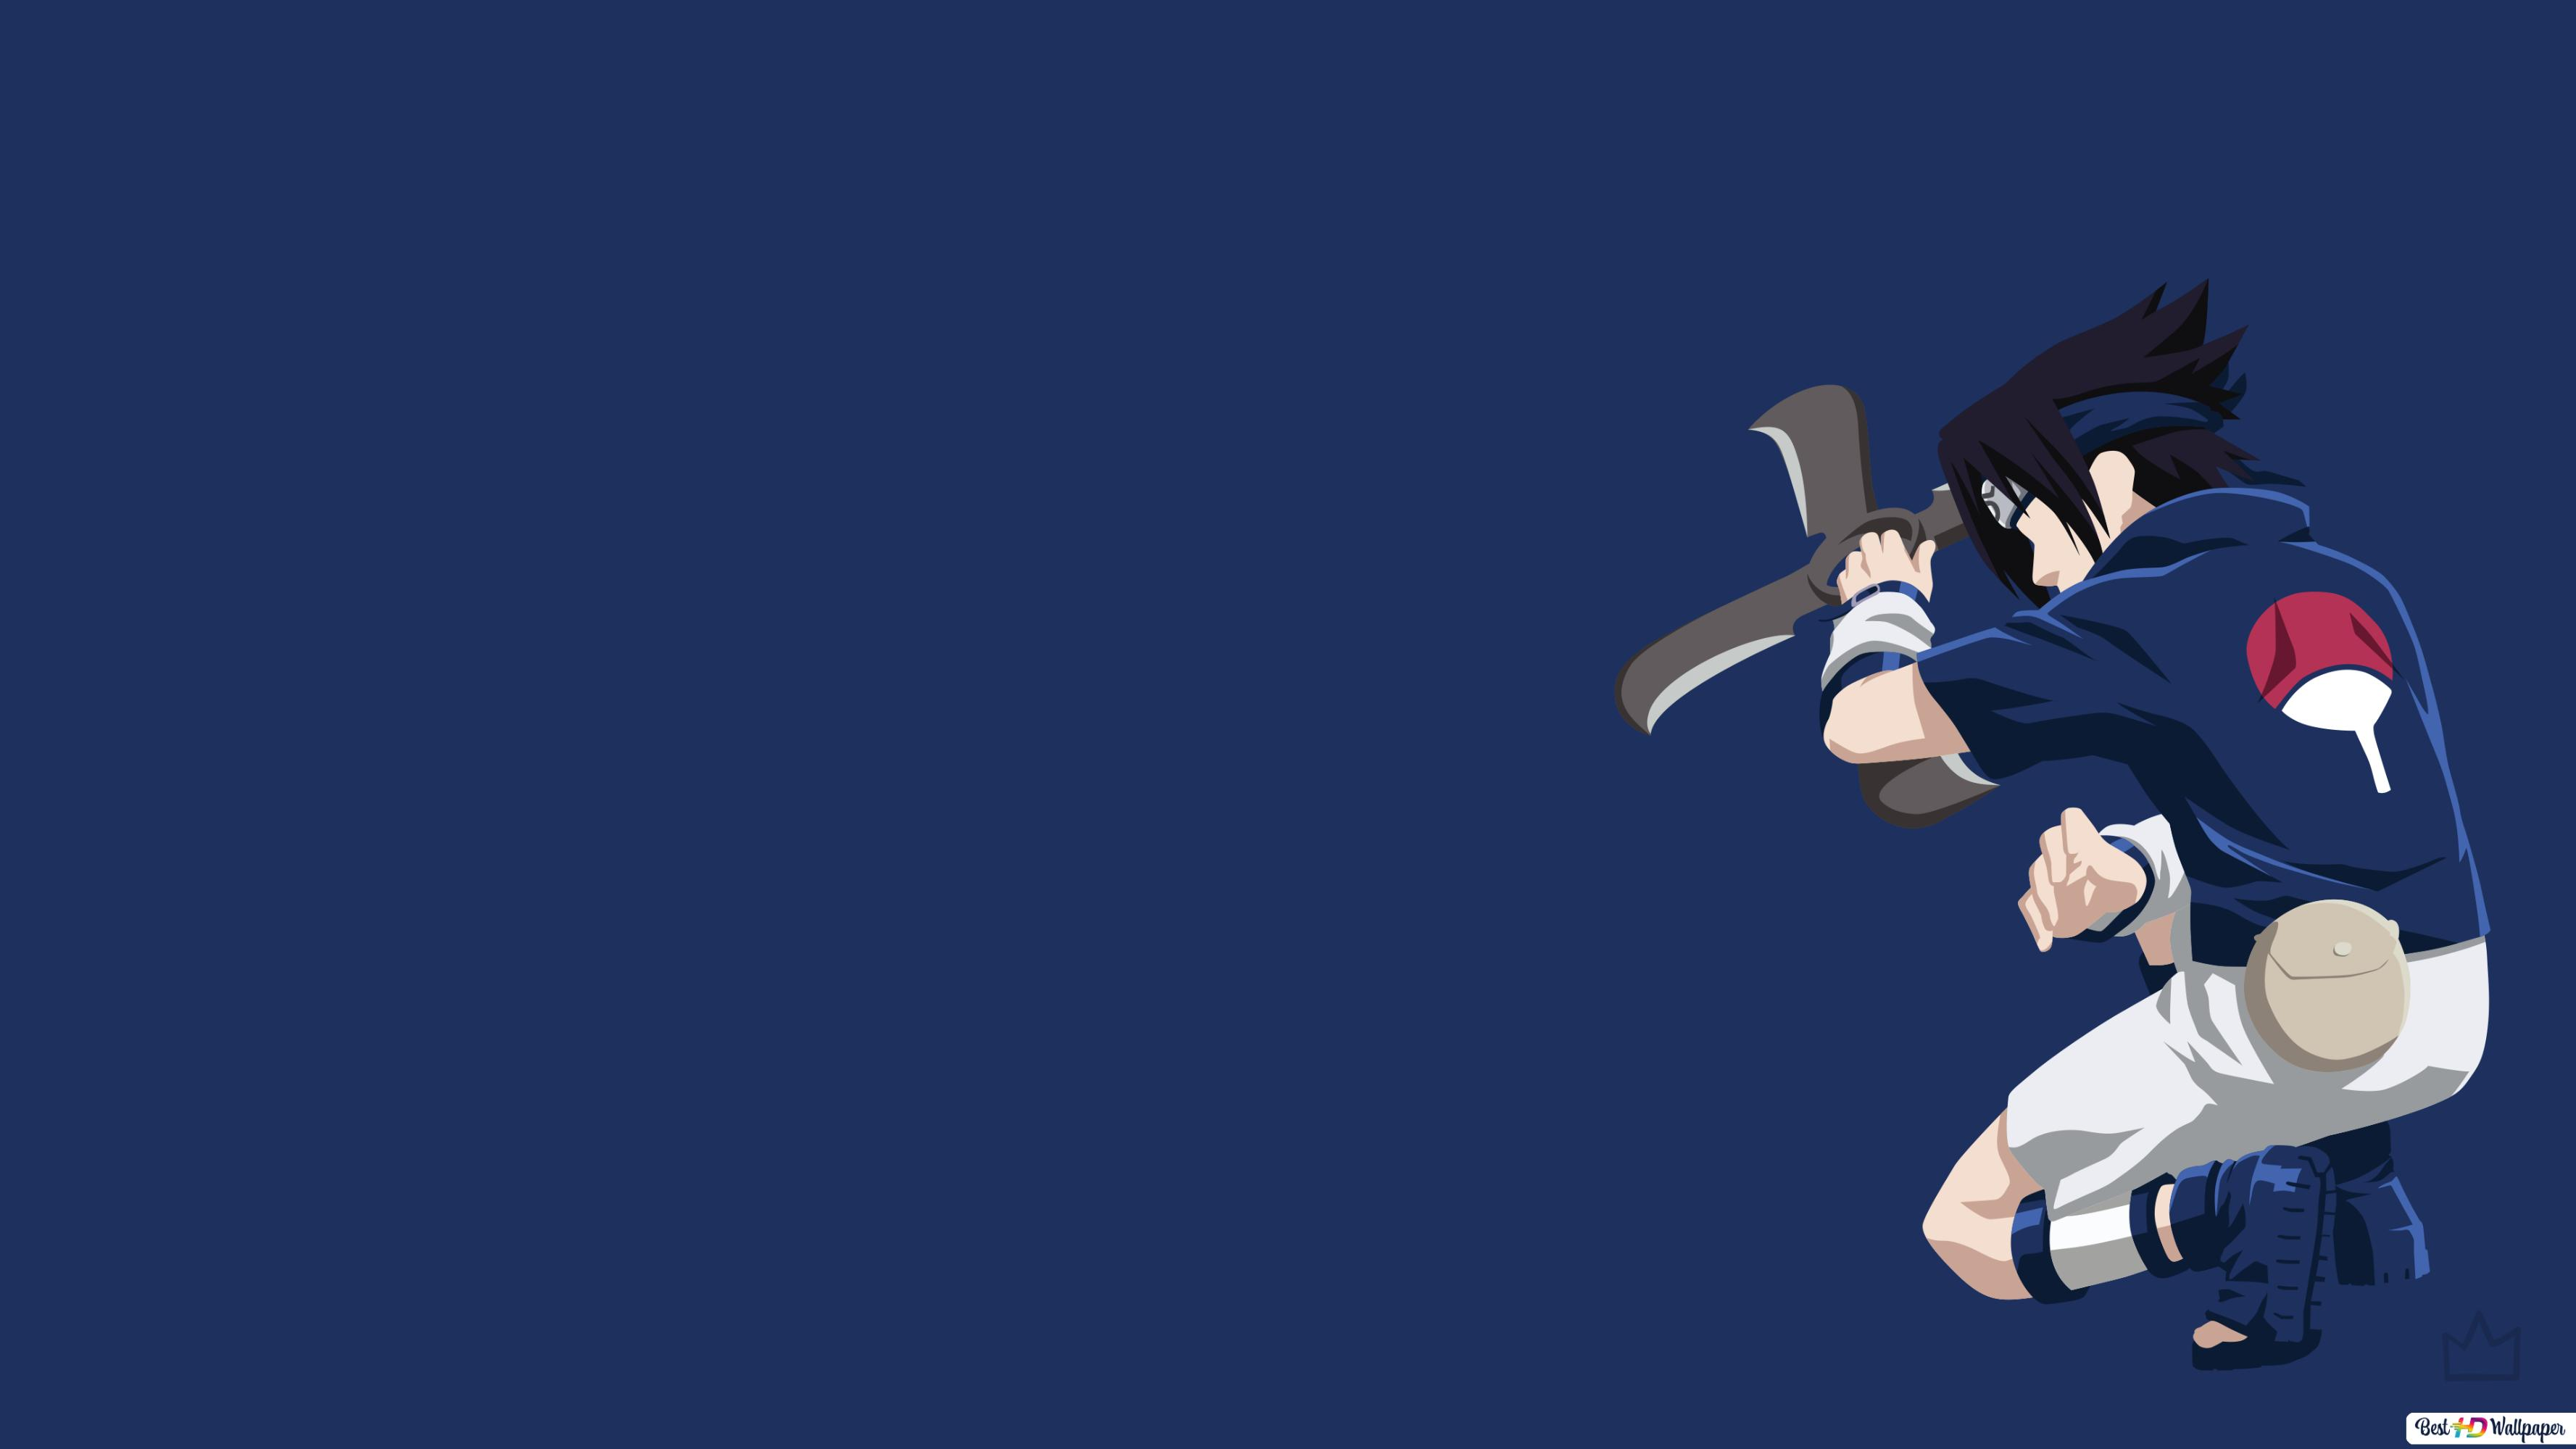 sasuke uchiha in naruto action wallpaper 3554x1999 6284 53